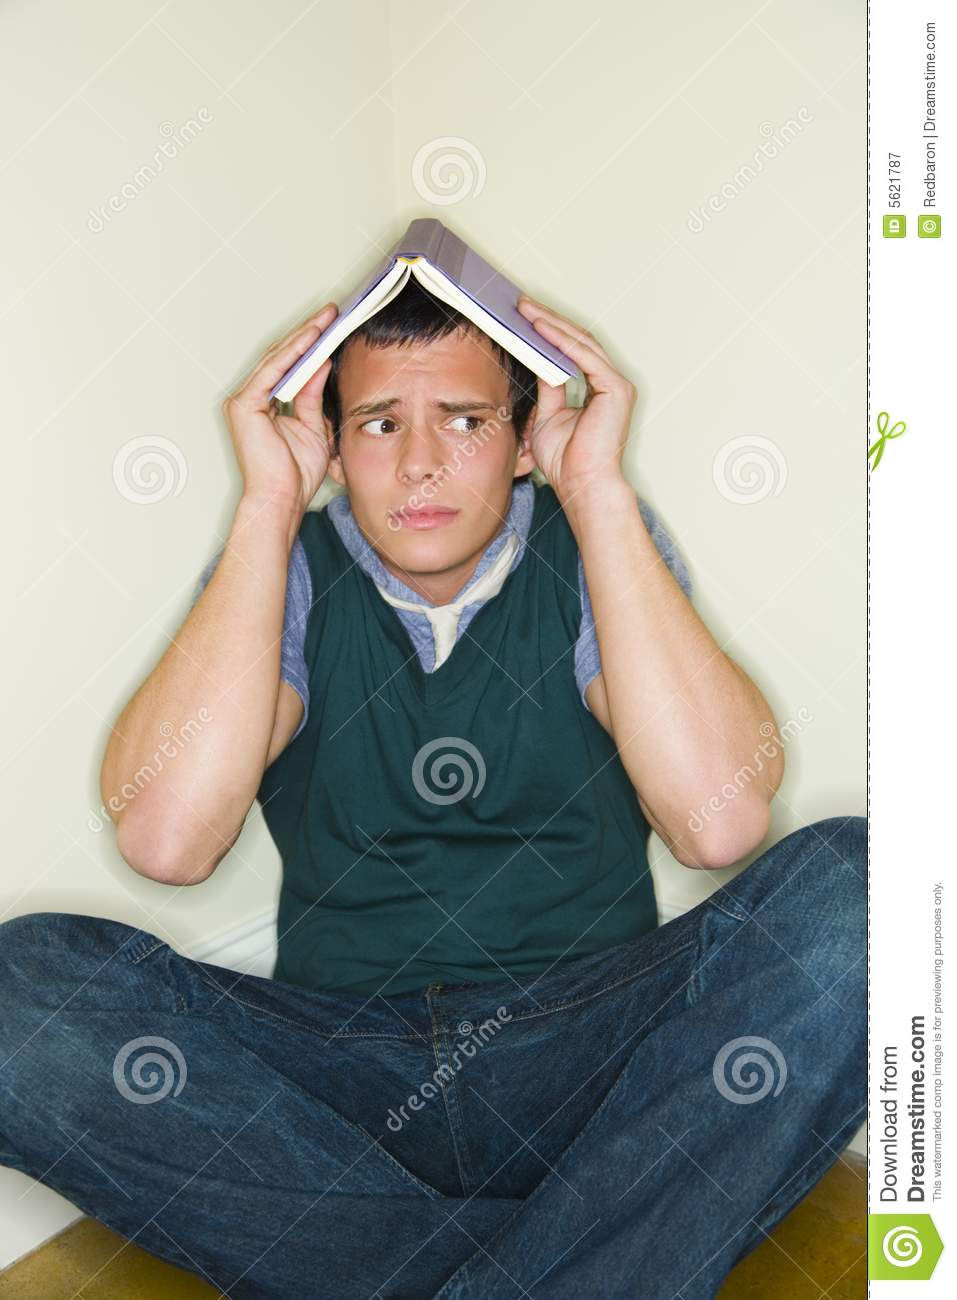 Man with book on his head